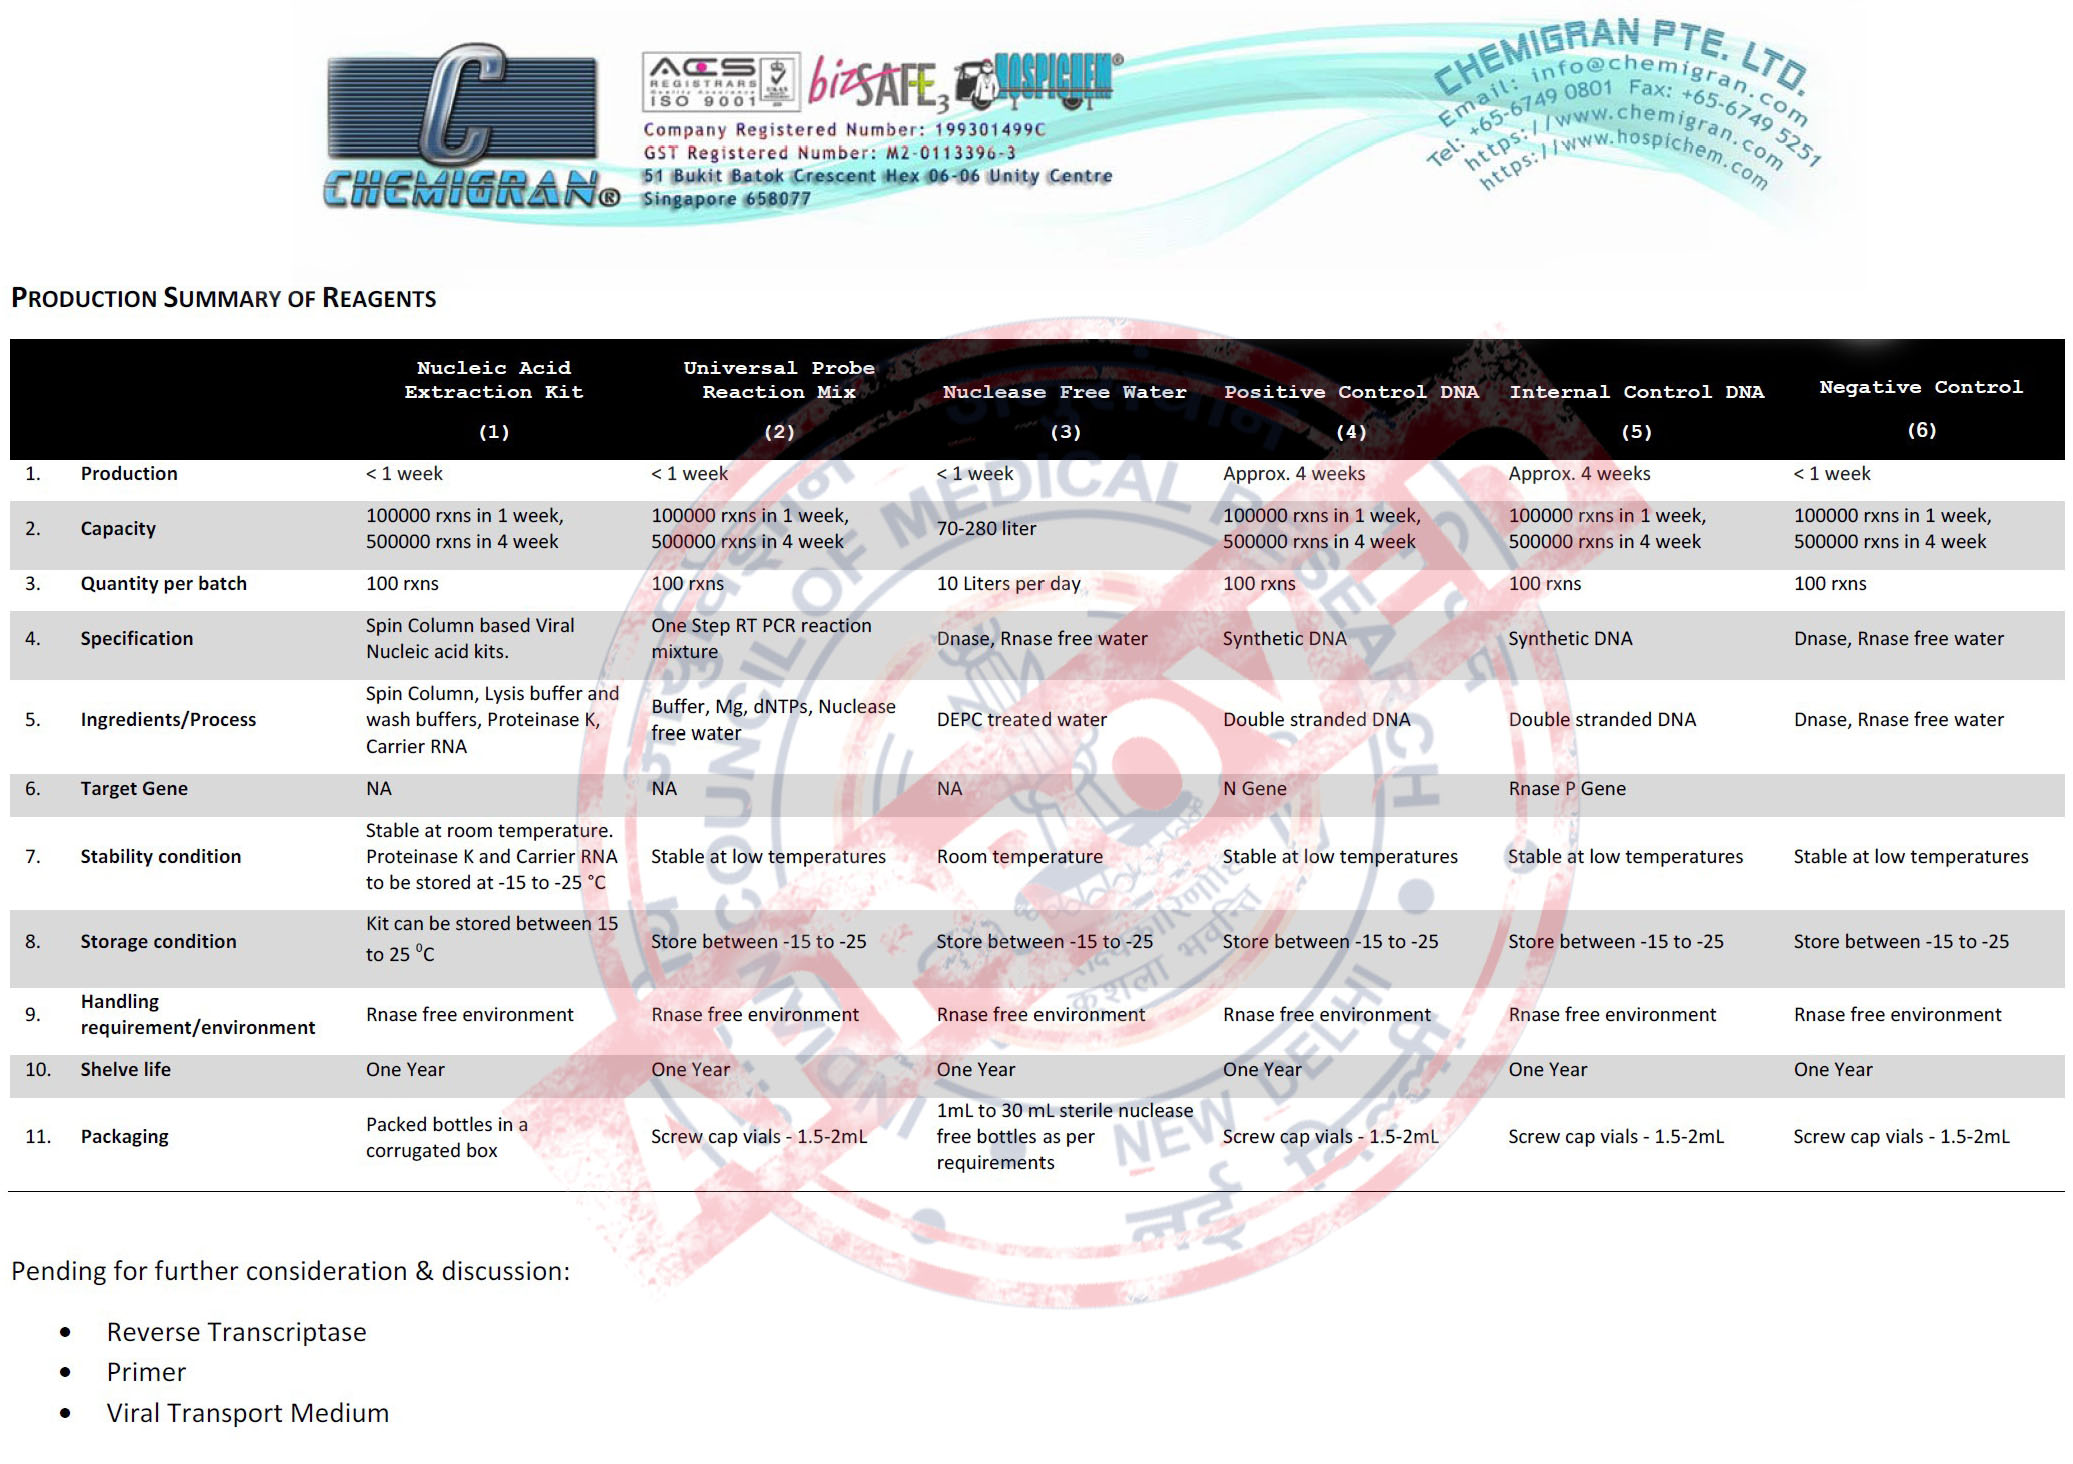 Product list and specification of reagent for COVID-19 test kit from Chemigran